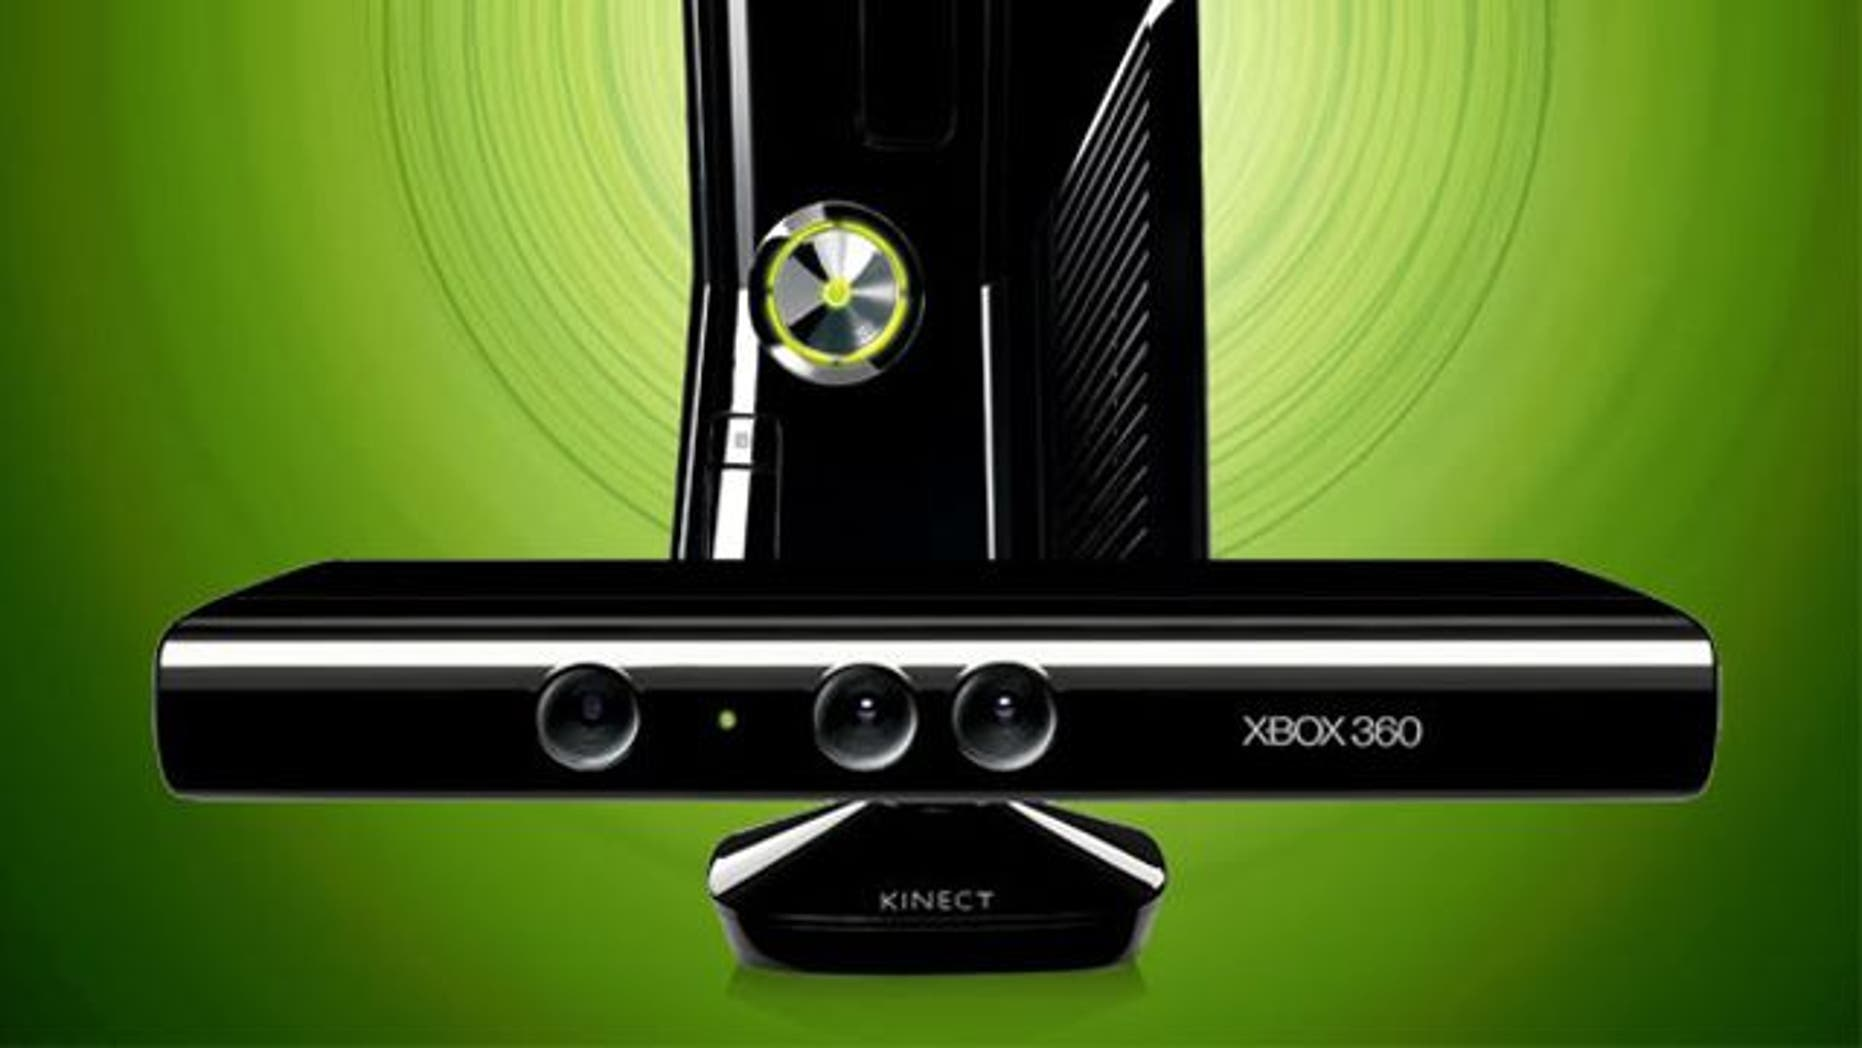 The Xbox 360 with Kinect software (Microsoft)